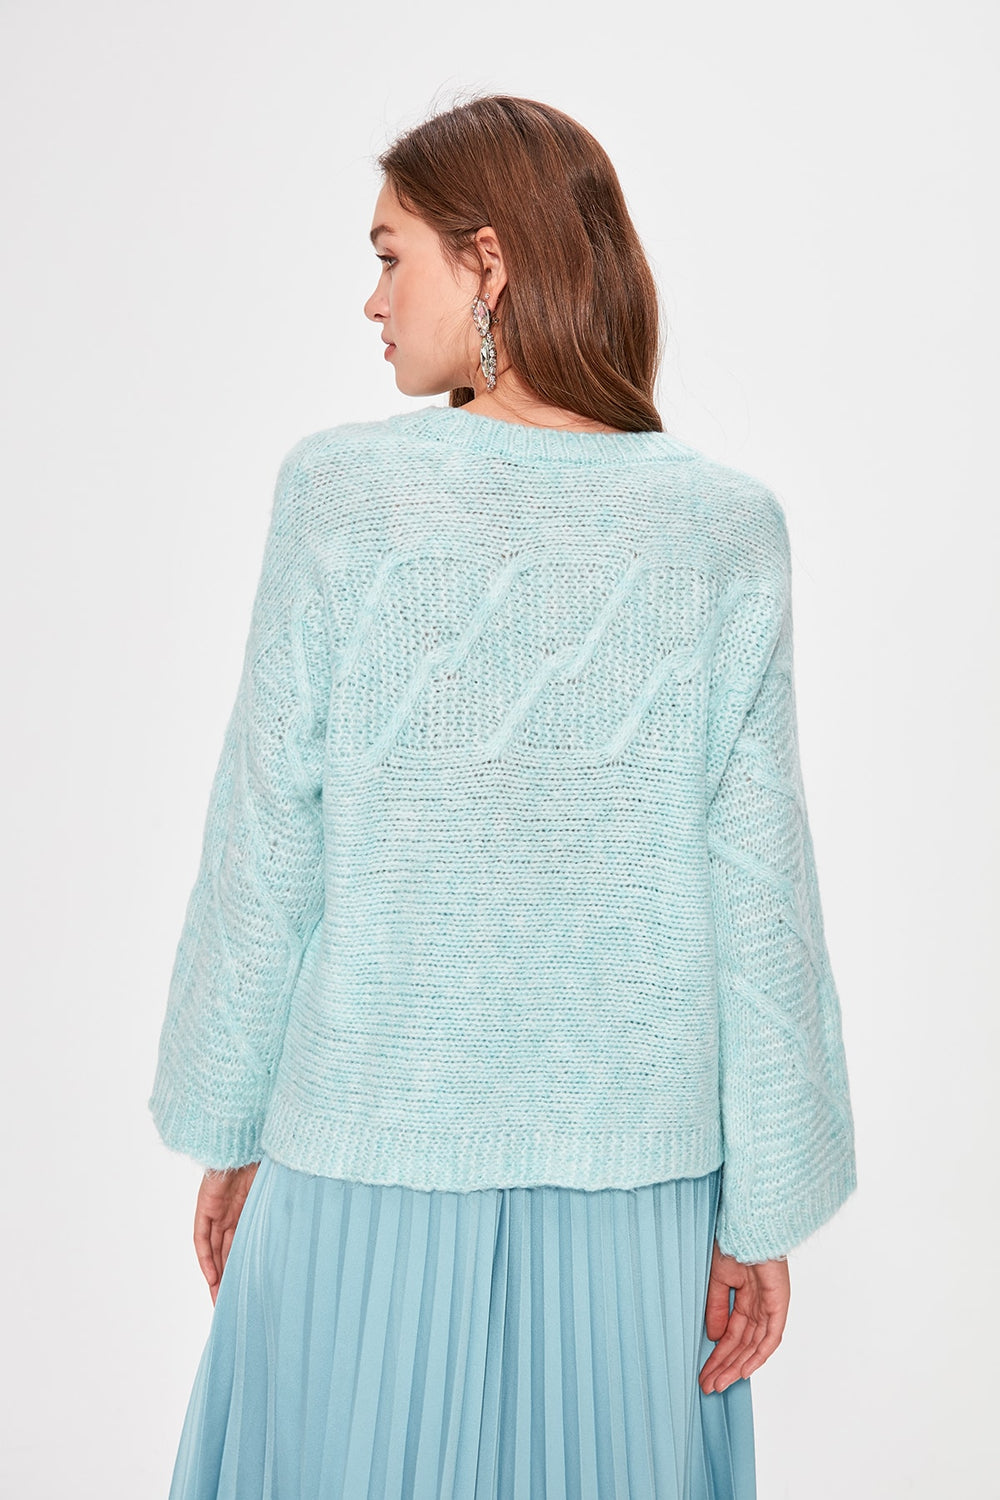 Mint Mesh Detailed Knitwear Sweater - Top Maxy